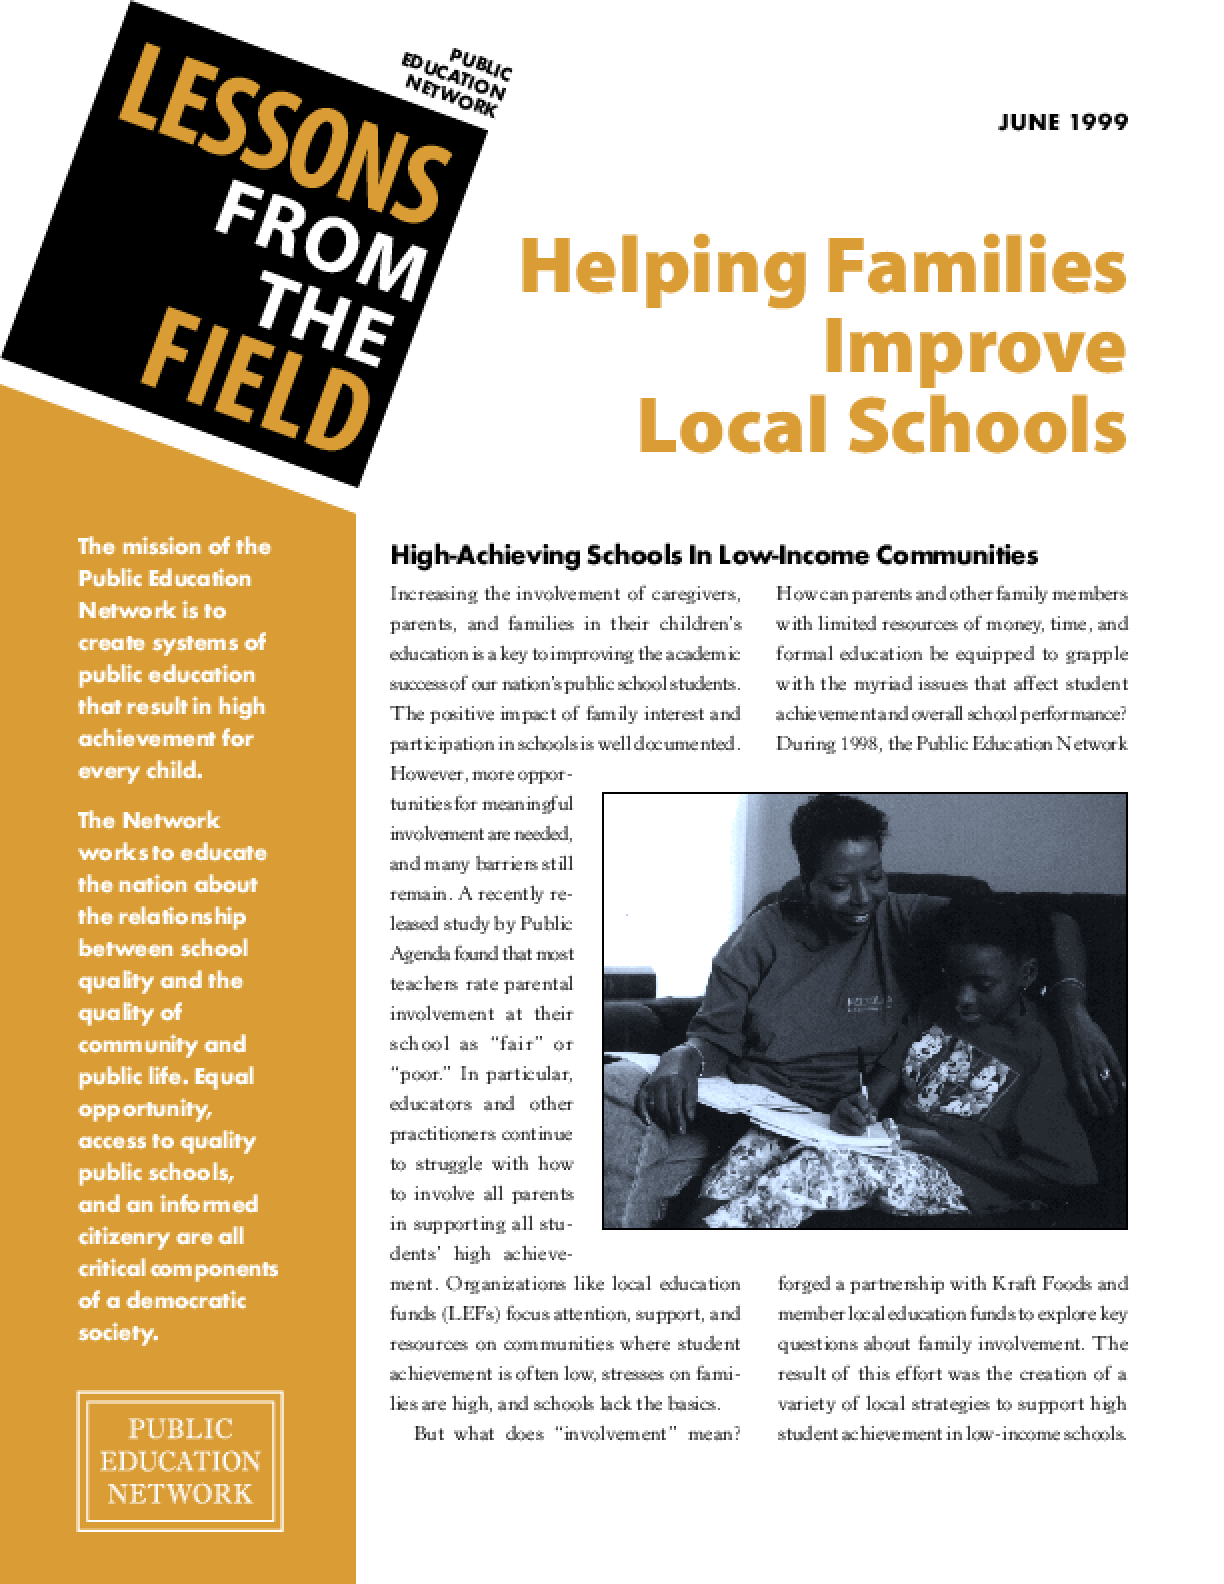 Helping Families Improve Local Schools: High-Achieving Schools in Low-Income Communities